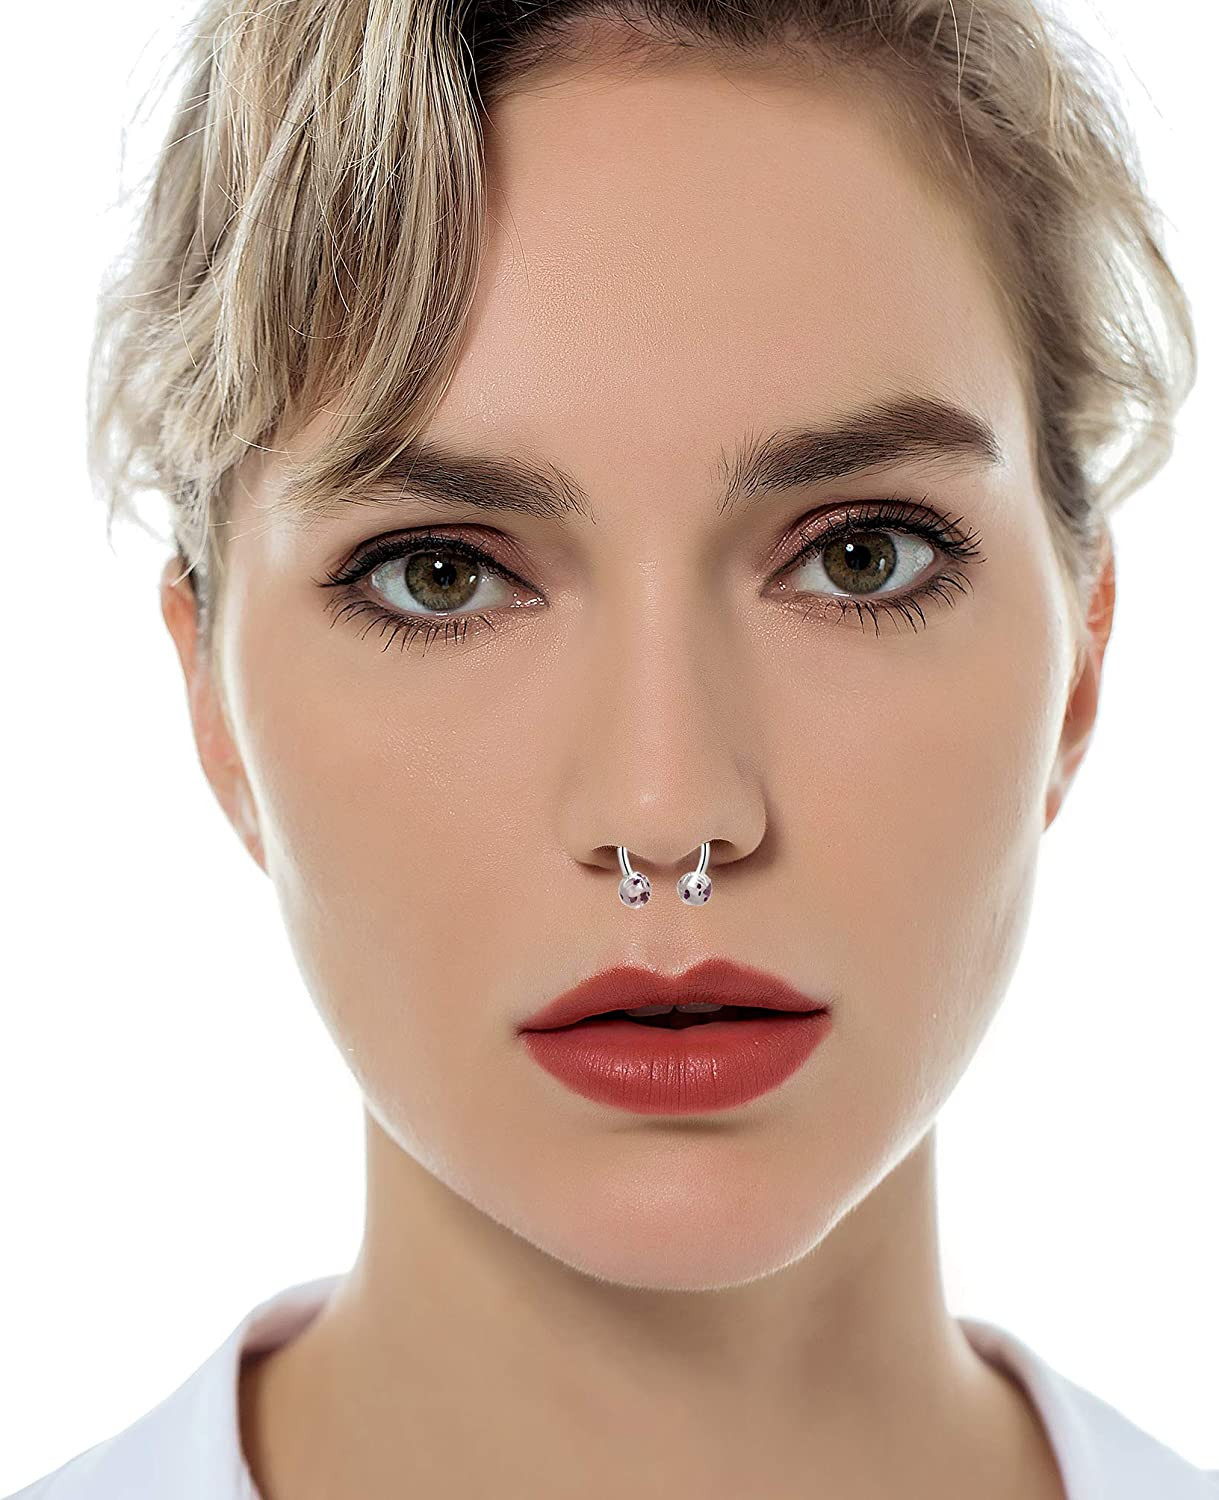 Tornito 16G 30Pcs Stainless Steel Horseshoe Nose Septum Rings Piercing Jewelry Cartilage Helix Tragus Earring Hoop Lip Horseshoe Piercing Retainer for Women Men 8mm 10mm